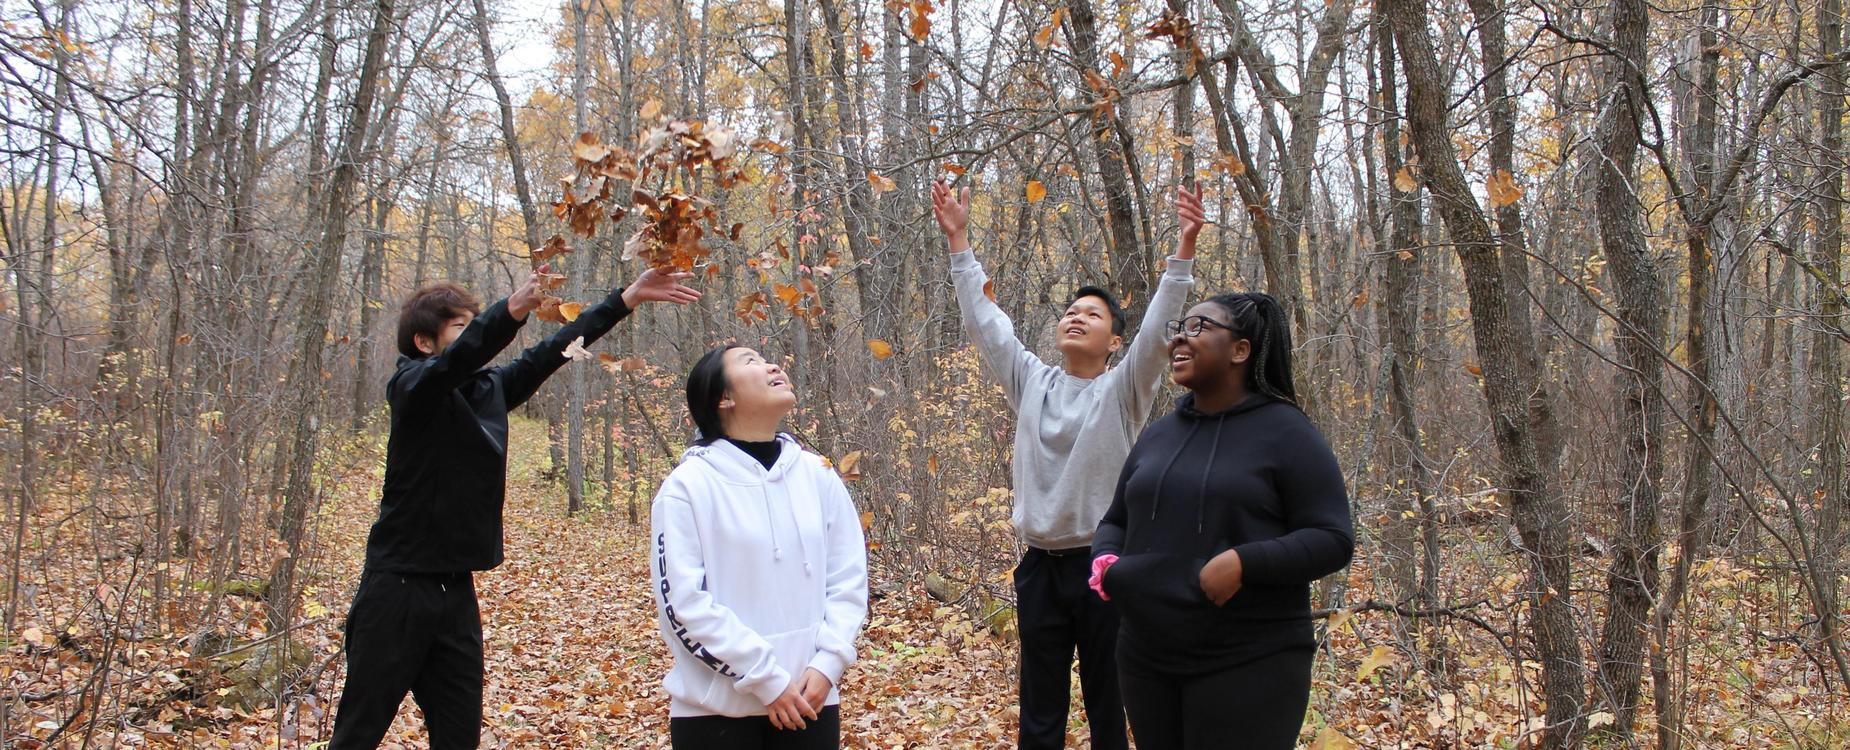 throwing fall leaves in the air